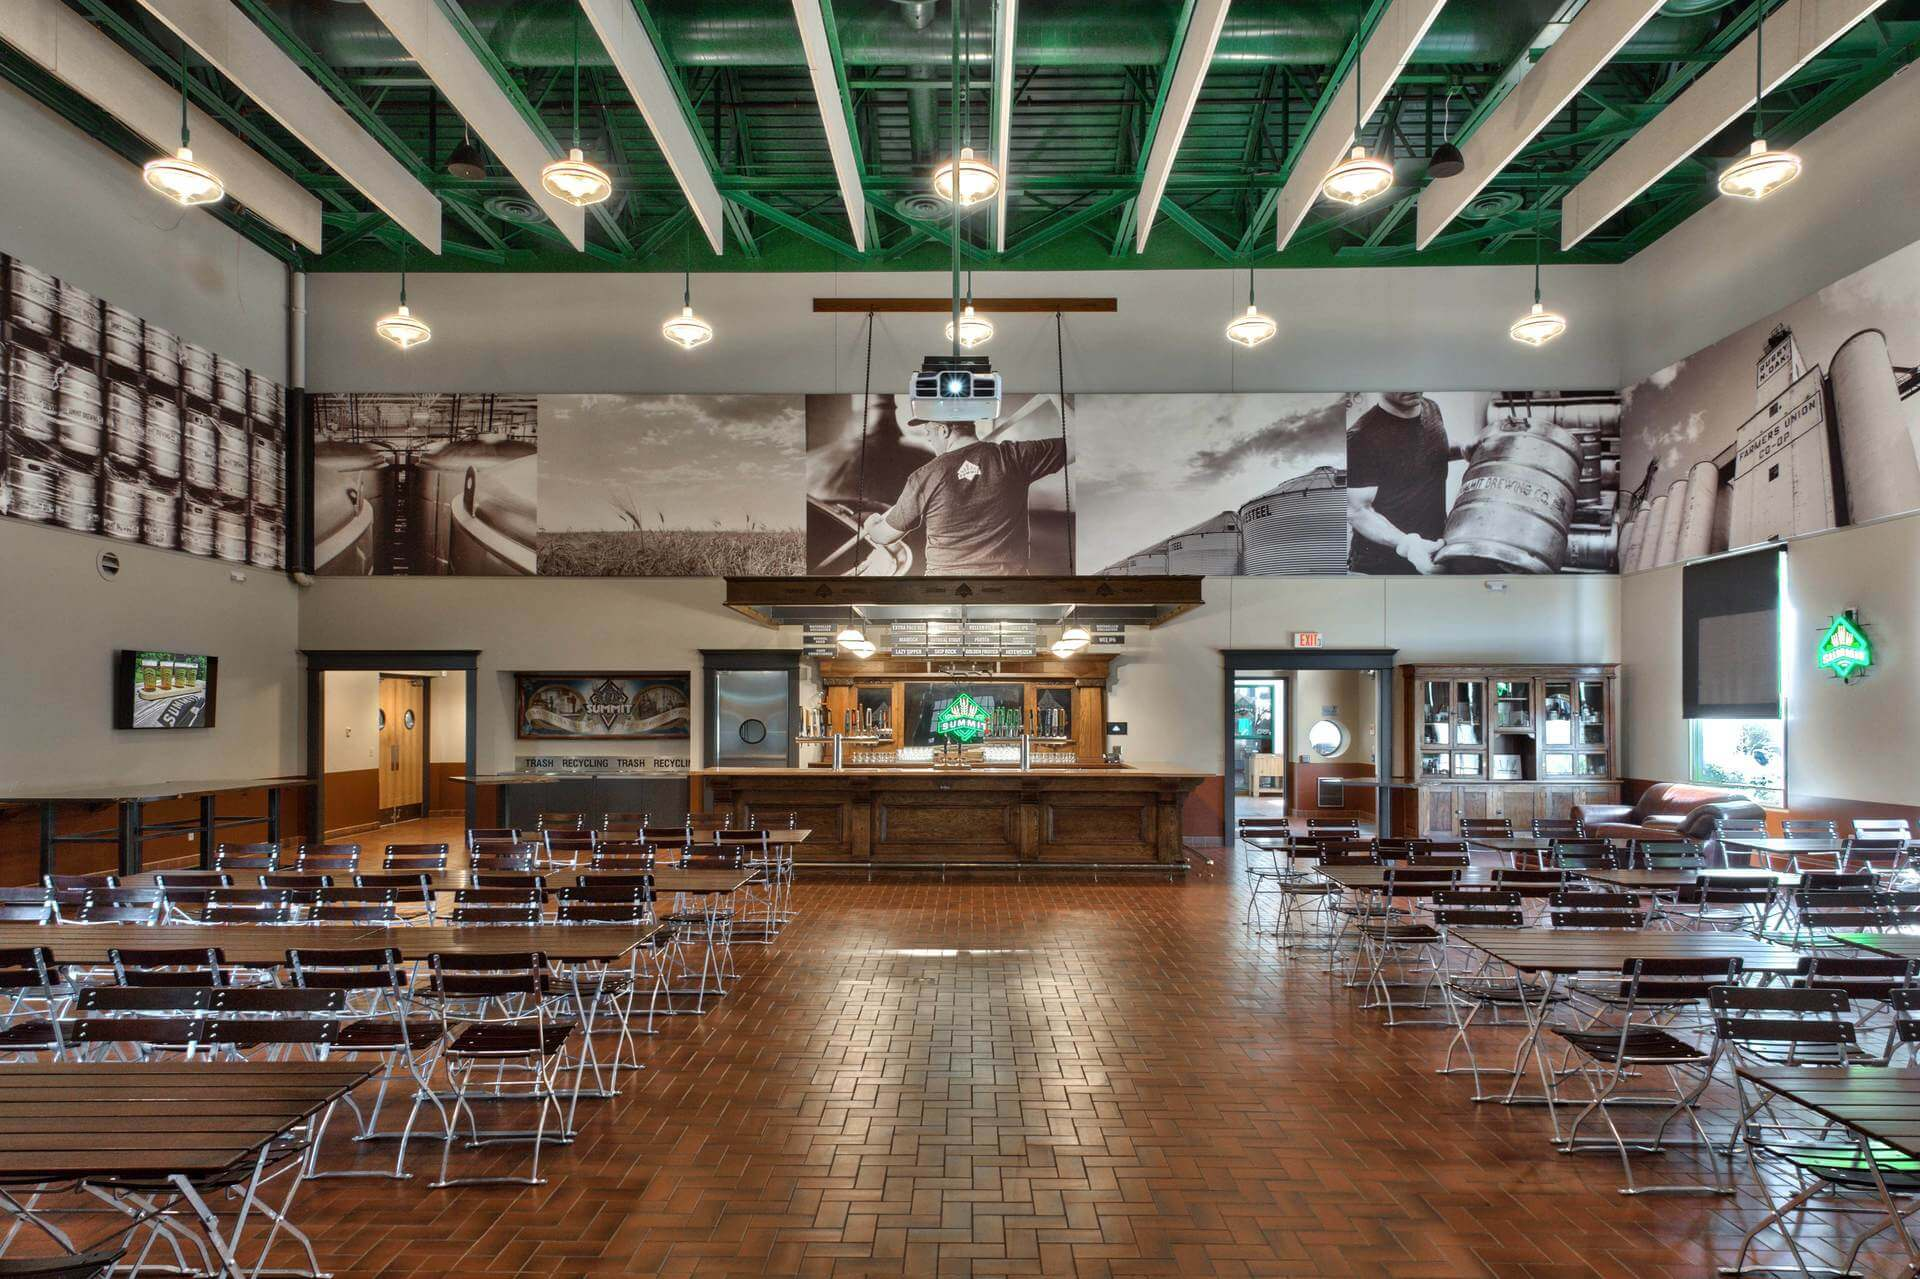 Inside the Summit Brewing Co. Ratskeller taproom in St. Paul, Minnesota